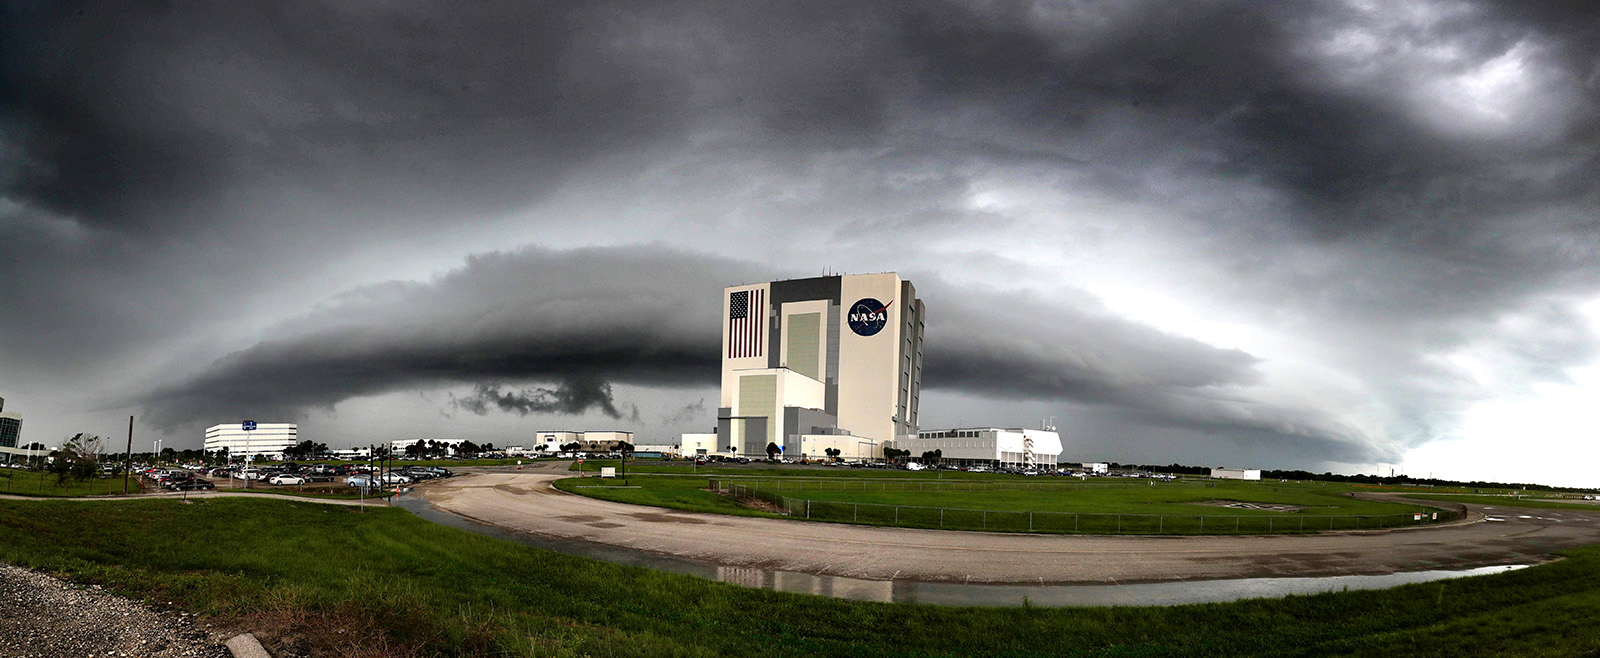 Westlake Legal Group NASAThunderstorms Hurricane Dorian: NASA's launch hardware survived storm, Kennedy Space Center confirms James Rogers fox-news/science/planet-earth/natural-disasters/hurricane-dorian fox-news/science/air-and-space/spaceflight fox-news/science/air-and-space/nasa fox news fnc/science fnc article 58409721-2d15-542b-8c04-a163759d2313